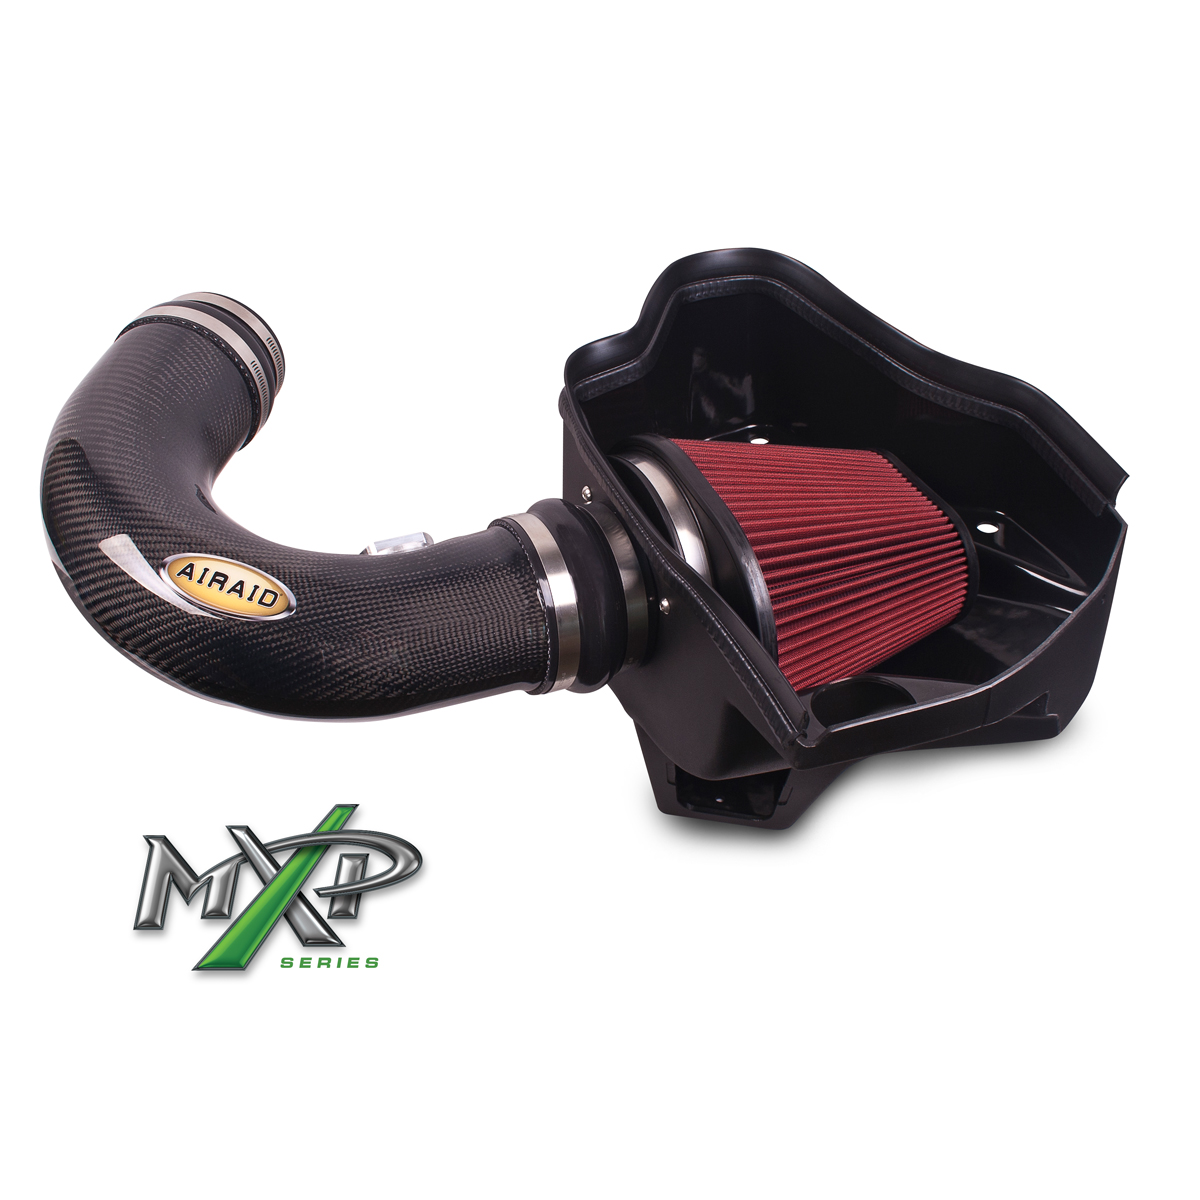 2010+ Camaro SS AIRAID MXP Series Cold Air Dam Intake System w/SynthaFlow Oiled Filter & Carbon Fiber Tube